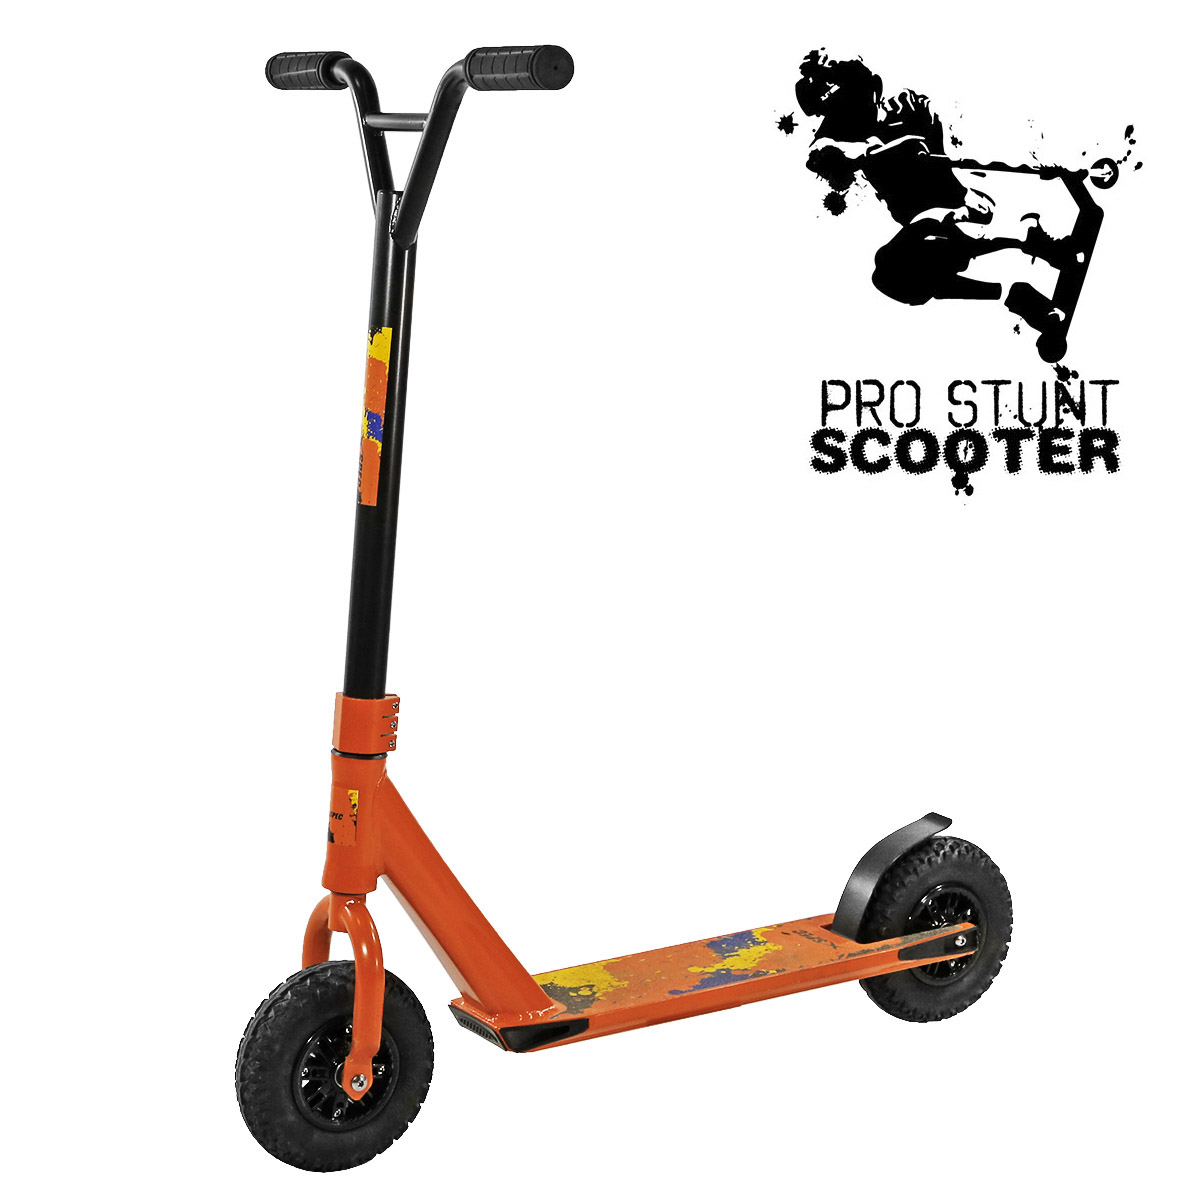 Xspec Aluminum Pro Stunt Dirt Kick Scooter Offroad All Terrain, Orange by Xspec